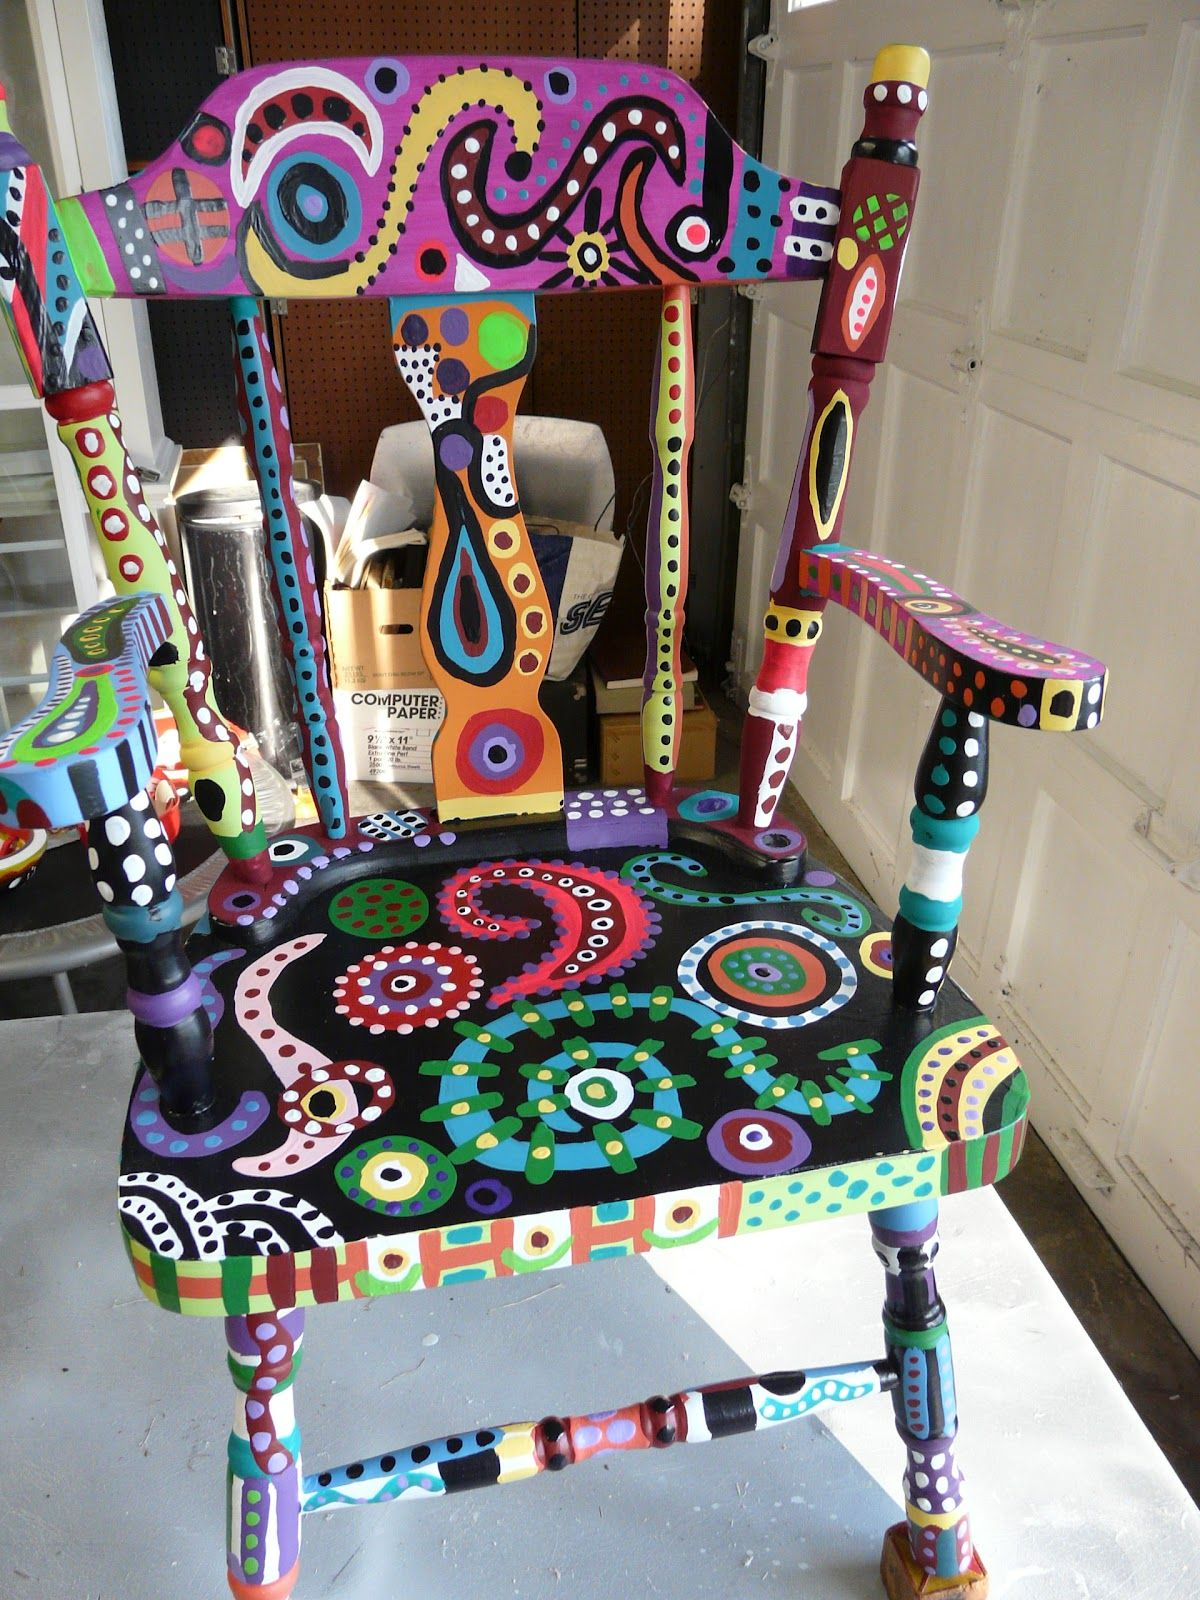 My Magical Chair Whimsical Furniture Funky Painted Furniture Whimsical Painted Furniture